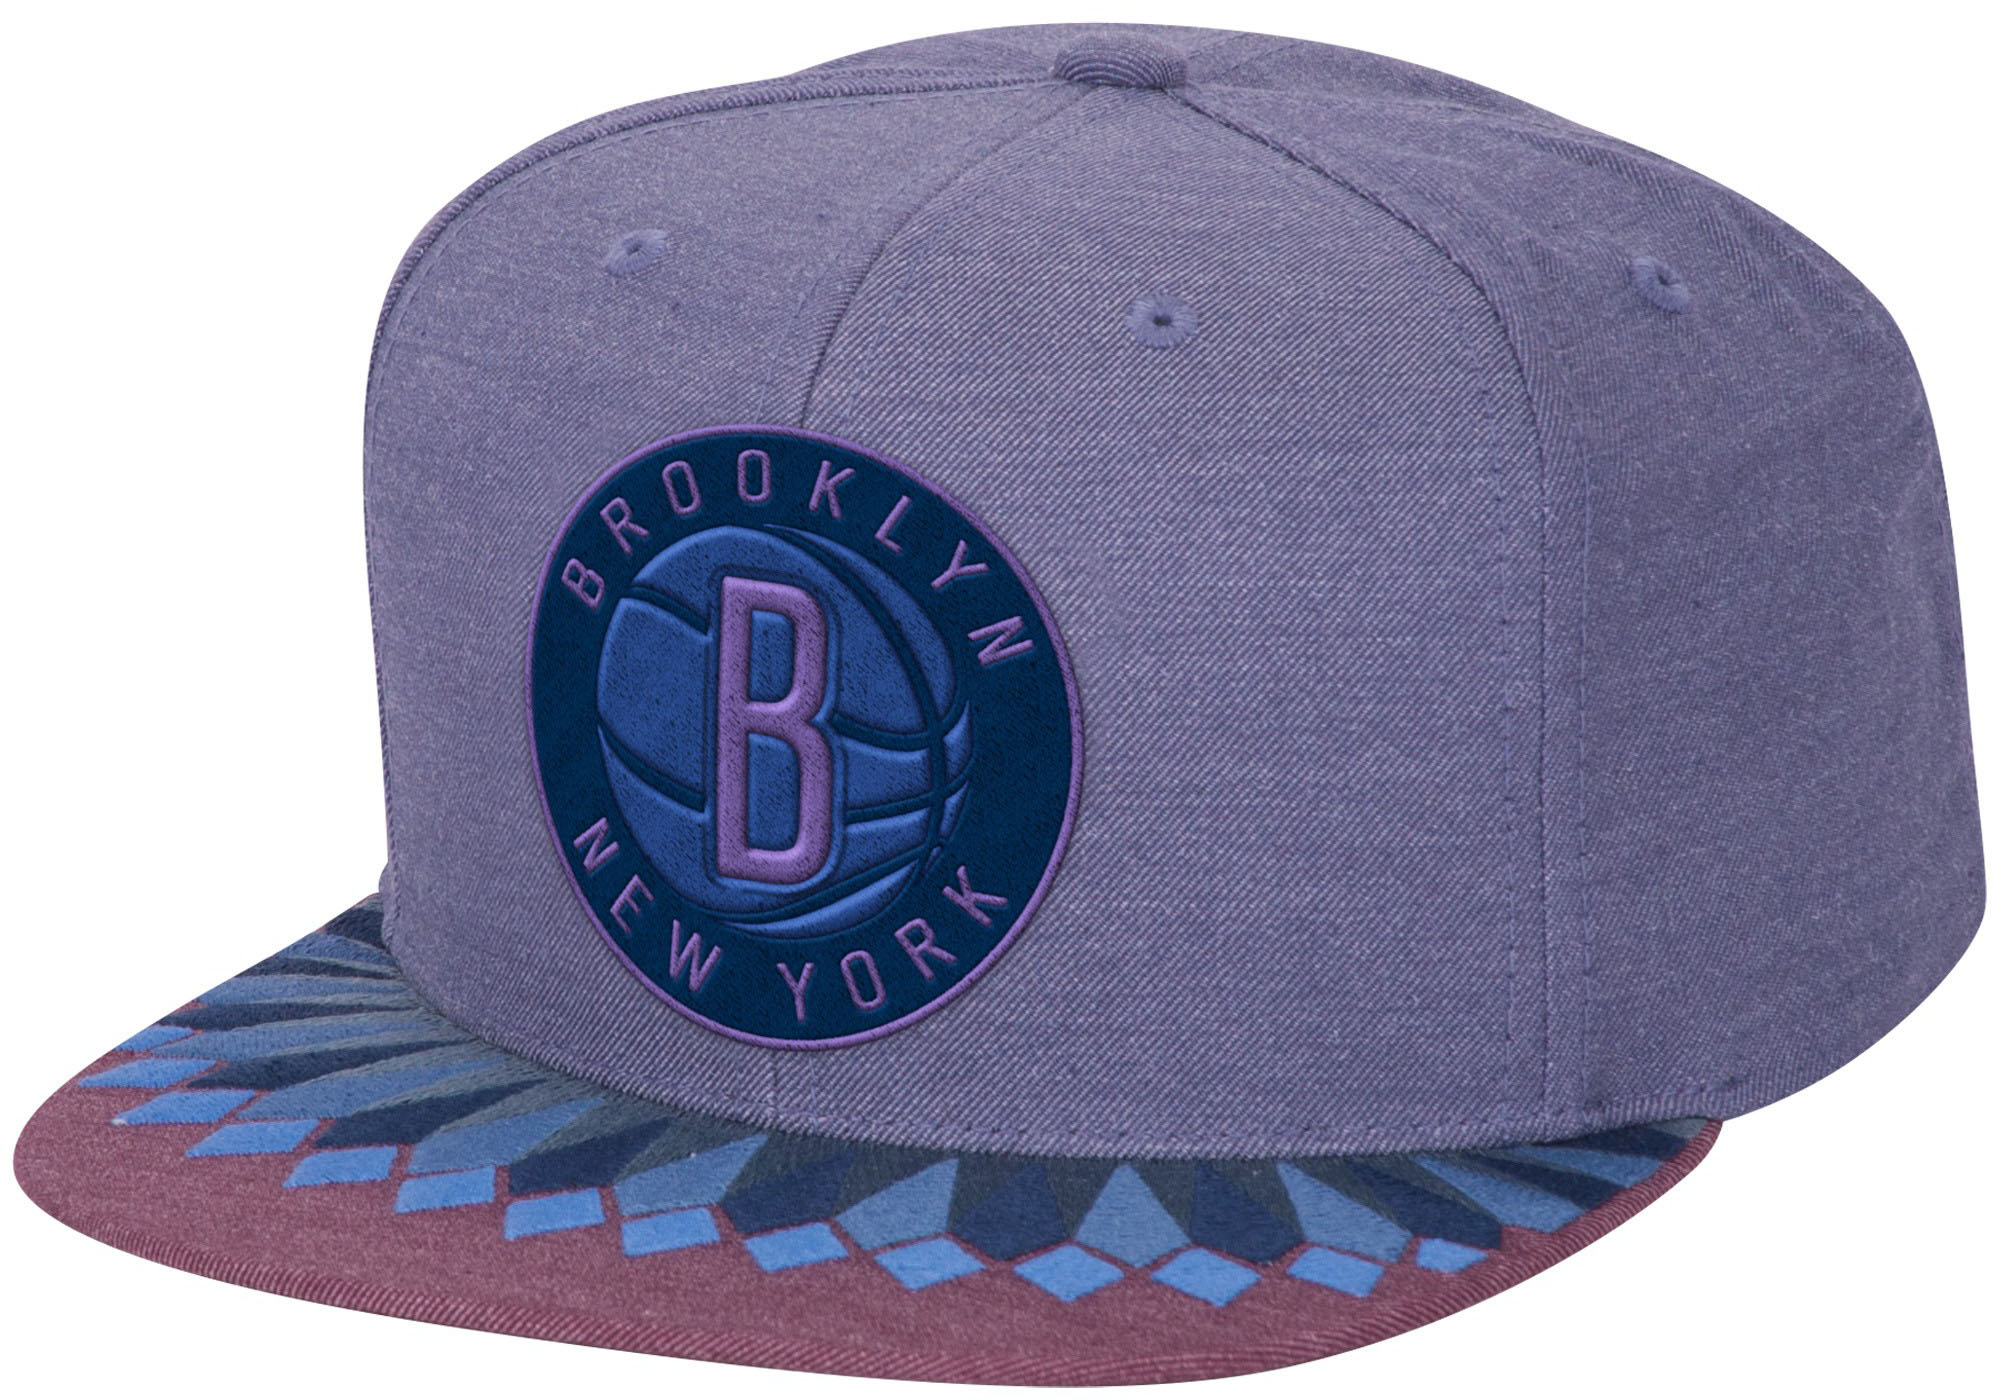 Mitchell & Ness releases new variant strapbacks